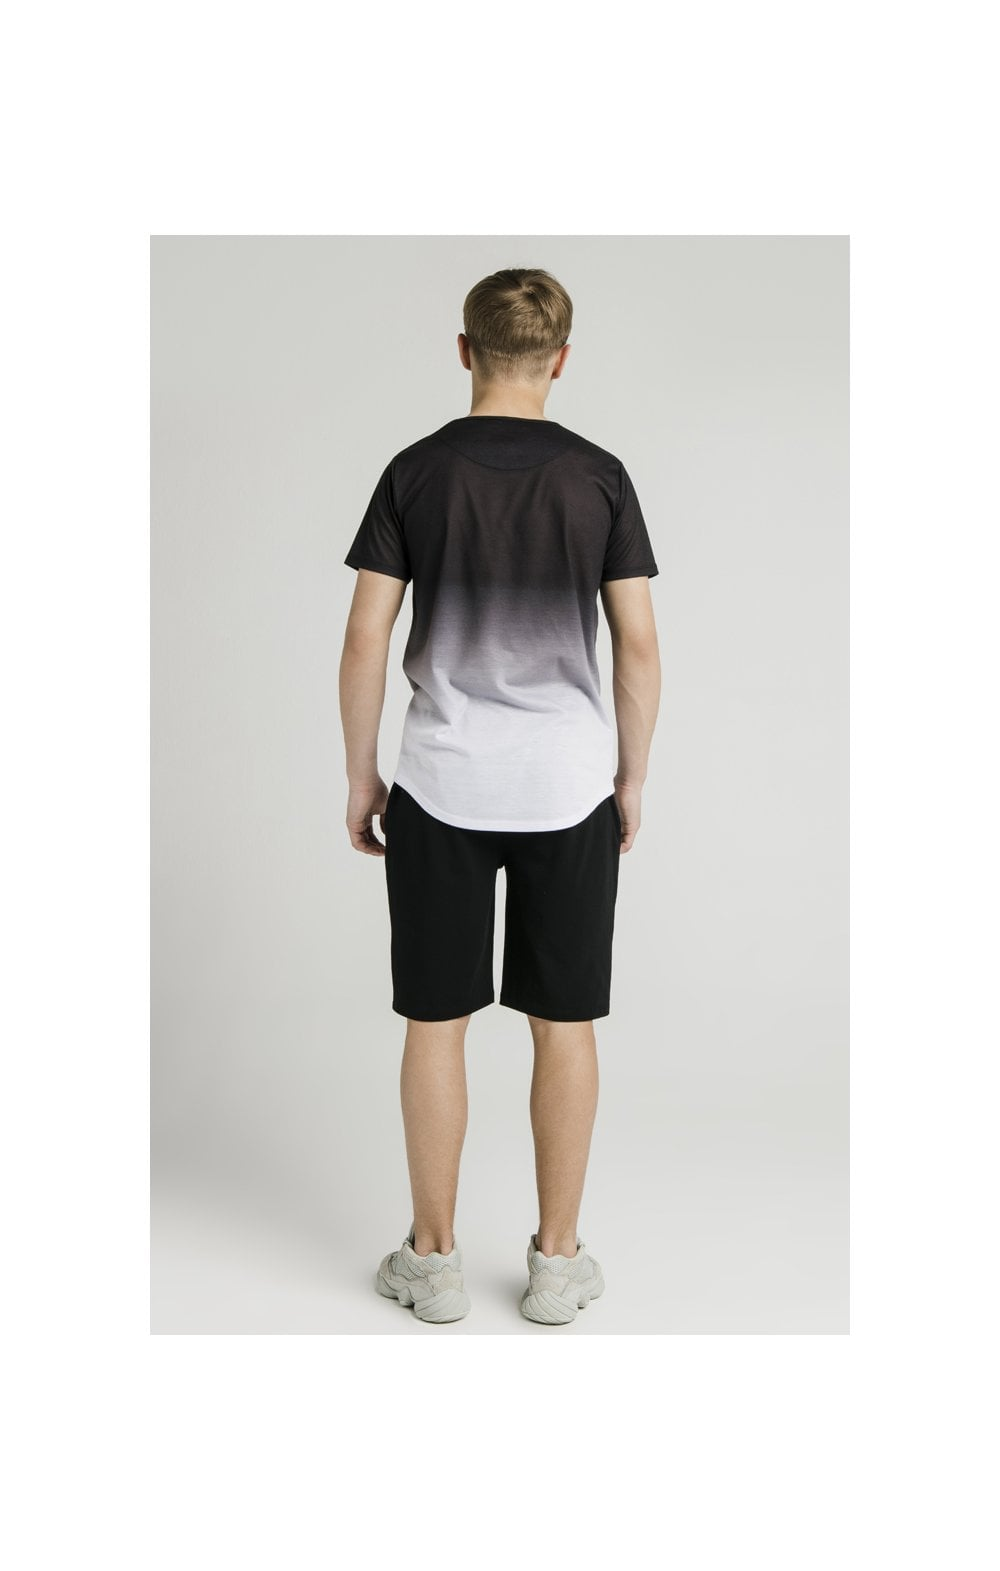 Load image into Gallery viewer, Illusive London S/S Fade Tee - Black & White (7)